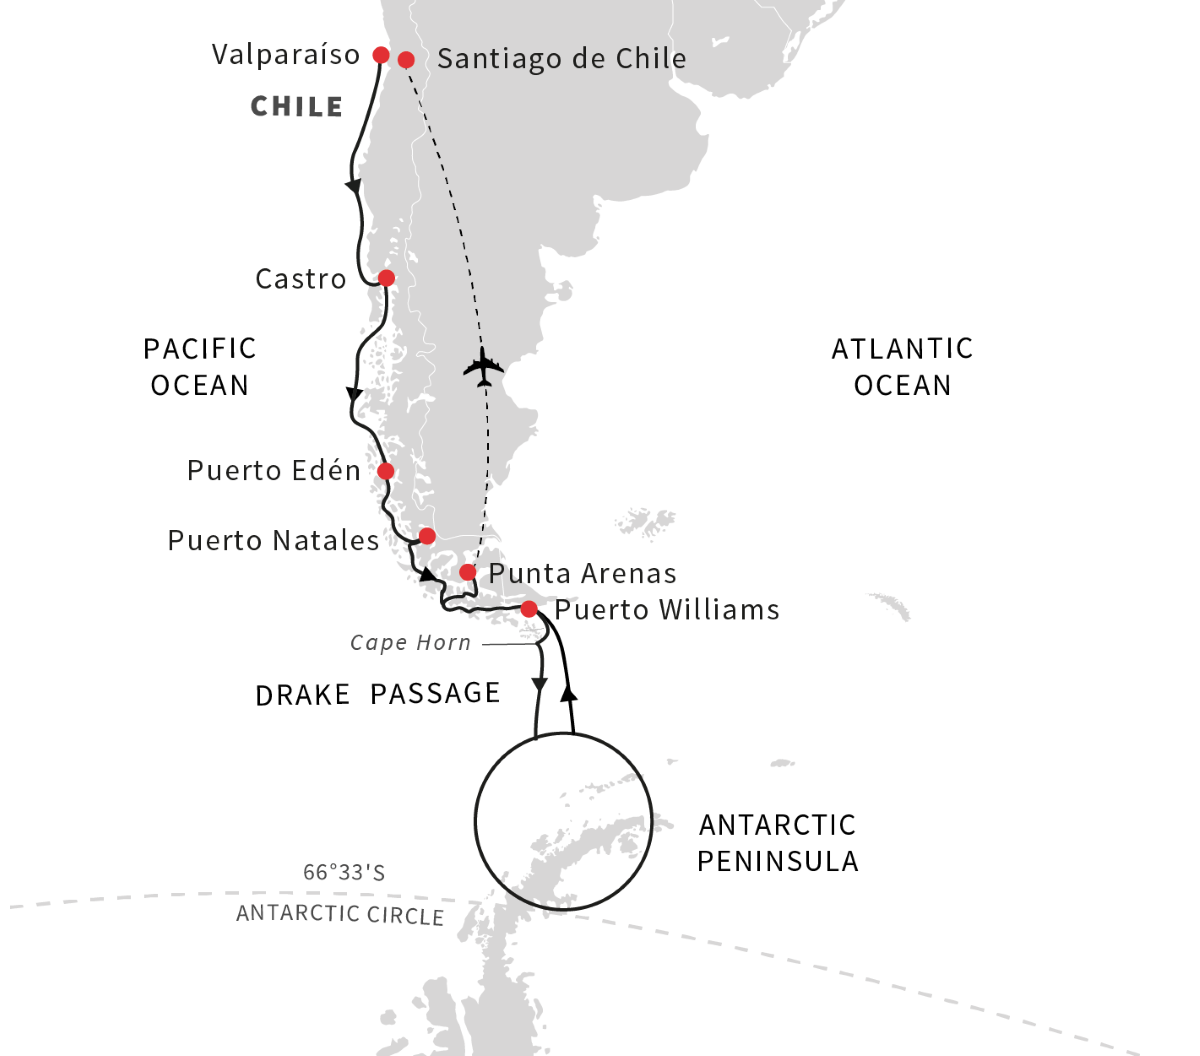 Antarctica, Patagonia, Chilean Fjords - Voyage of Discovery (Southbound)